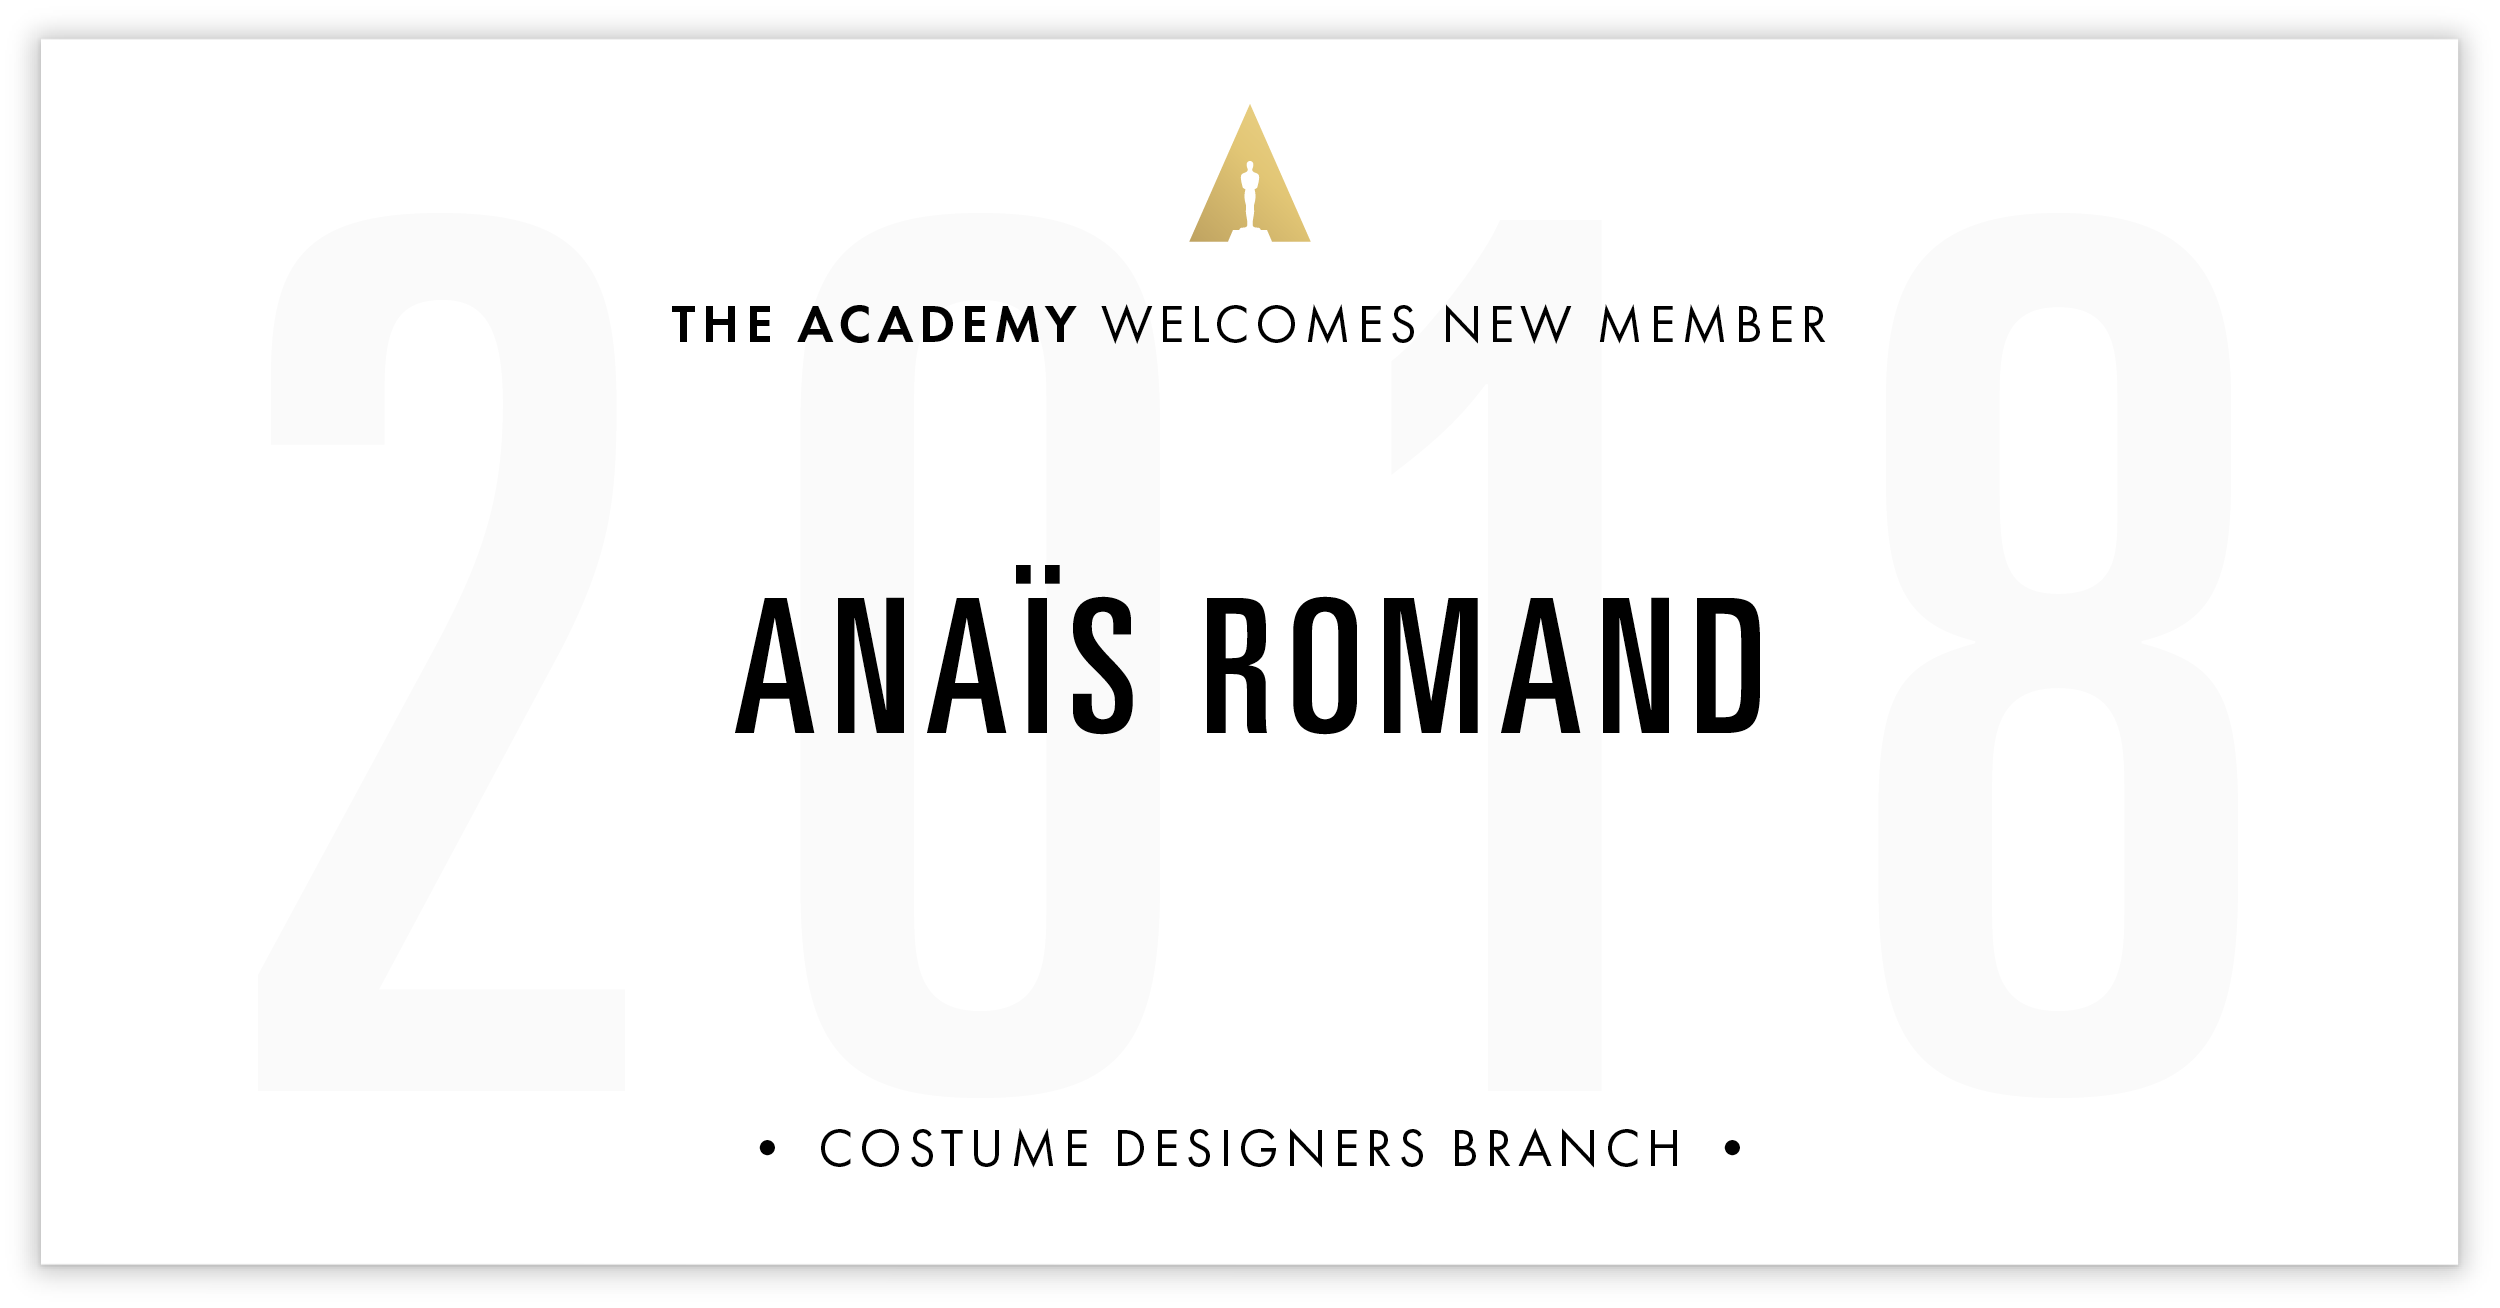 Anaïs Romand is invited!